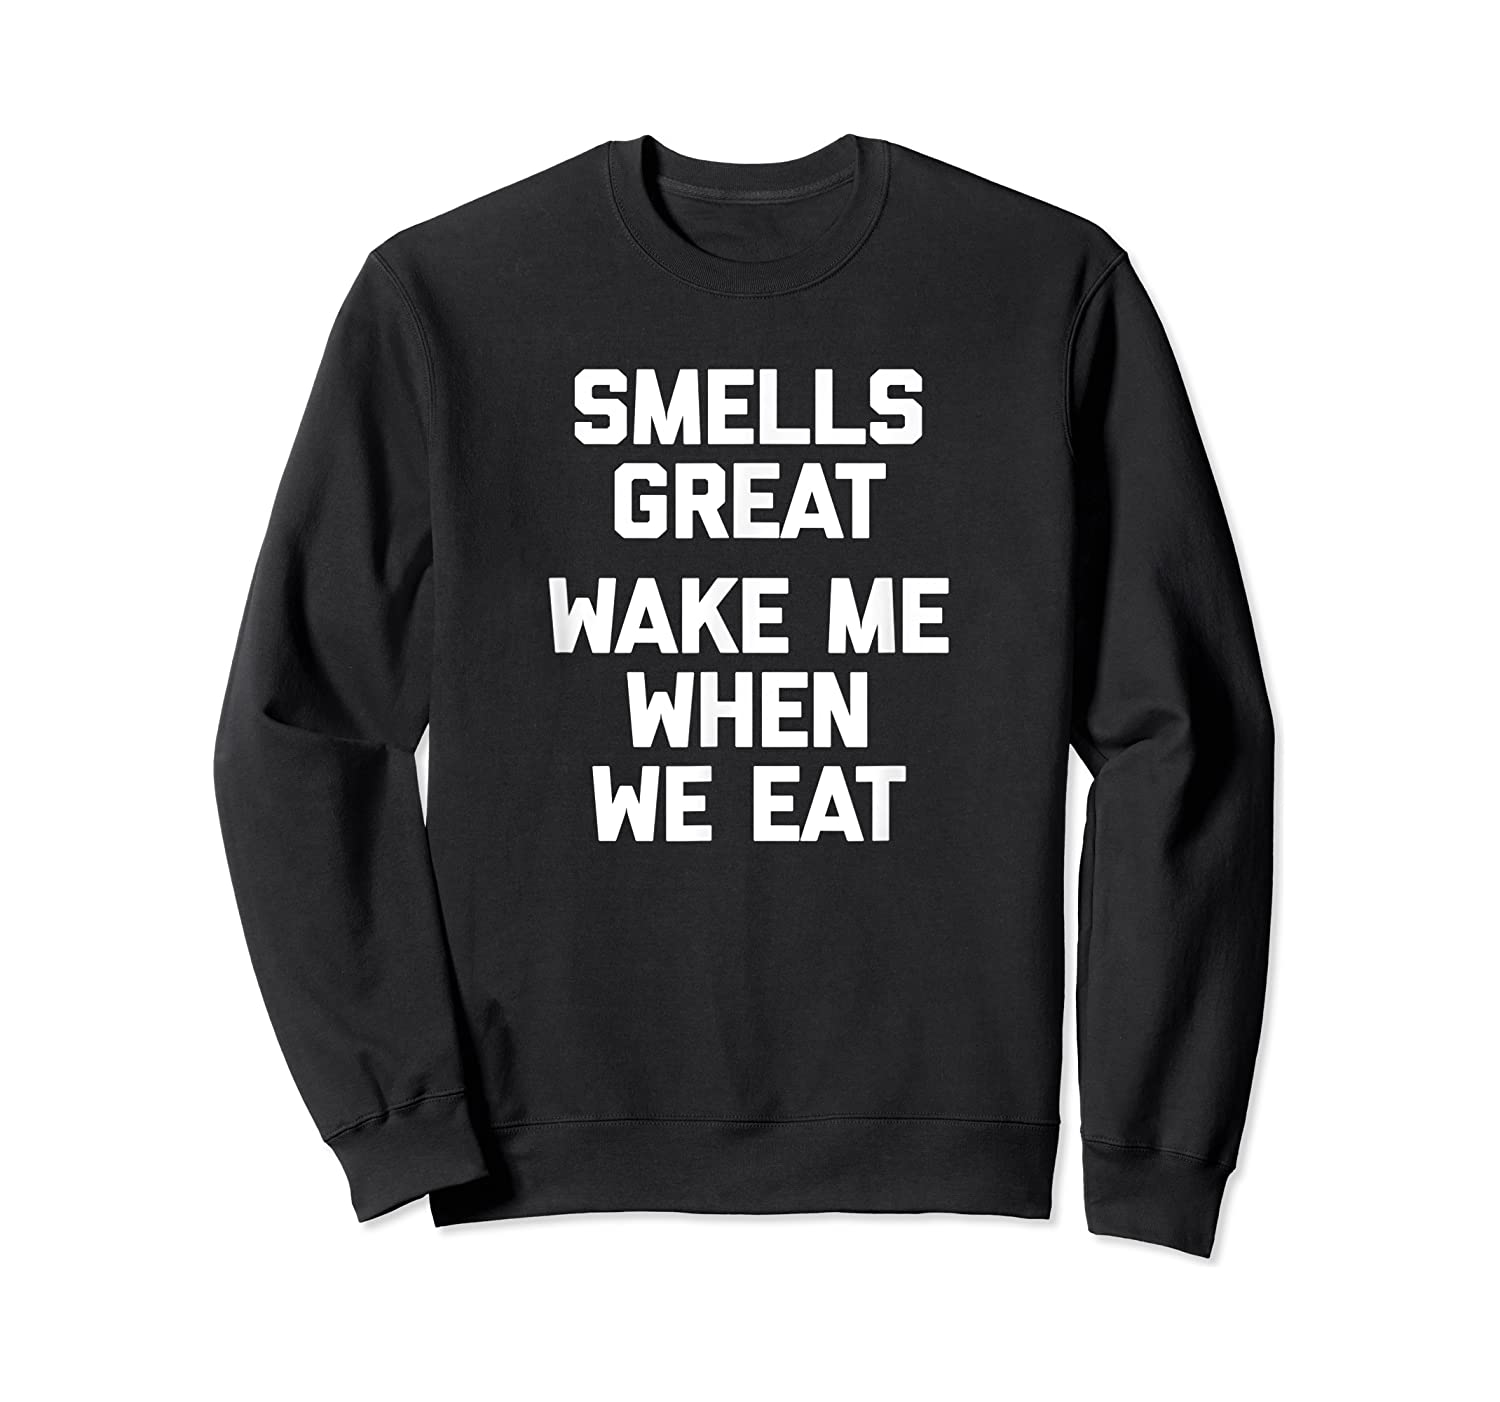 Smells Great, Wake Me When We Eat Funny Saying Food Shirts Crewneck Sweater